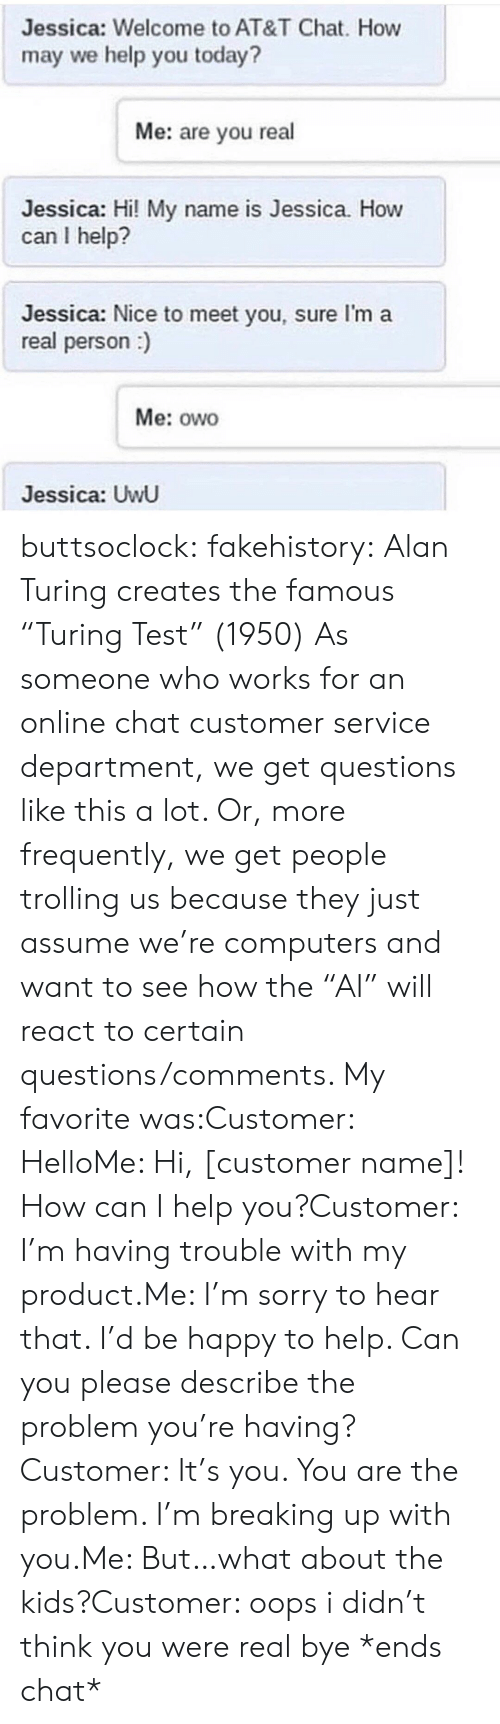 """Hi My: Jessica: Welcome to AT&T Chat. How  may we help you today?  Me: are you real  Jessica: Hi! My name is Jessica. How  can I help?  Jessica: Nice to meet you, sure I'm a  real person)  Me: owo  Jessica: UwU buttsoclock:  fakehistory: Alan Turing creates the famous """"Turing Test"""" (1950) As someone who works for an online chat customer service department, we get questions like this a lot. Or, more frequently, we get people trolling us because they just assume we're computers and want to see how the""""AI"""" will react to certain questions/comments. My favorite was:Customer: HelloMe: Hi, [customer name]! How can I help you?Customer: I'm having trouble with my product.Me: I'm sorry to hear that. I'd be happy to help. Can you please describe the problem you're having?Customer: It's you. You are the problem. I'm breaking up with you.Me: But…what about the kids?Customer: oops i didn't think you were real bye *ends chat*"""